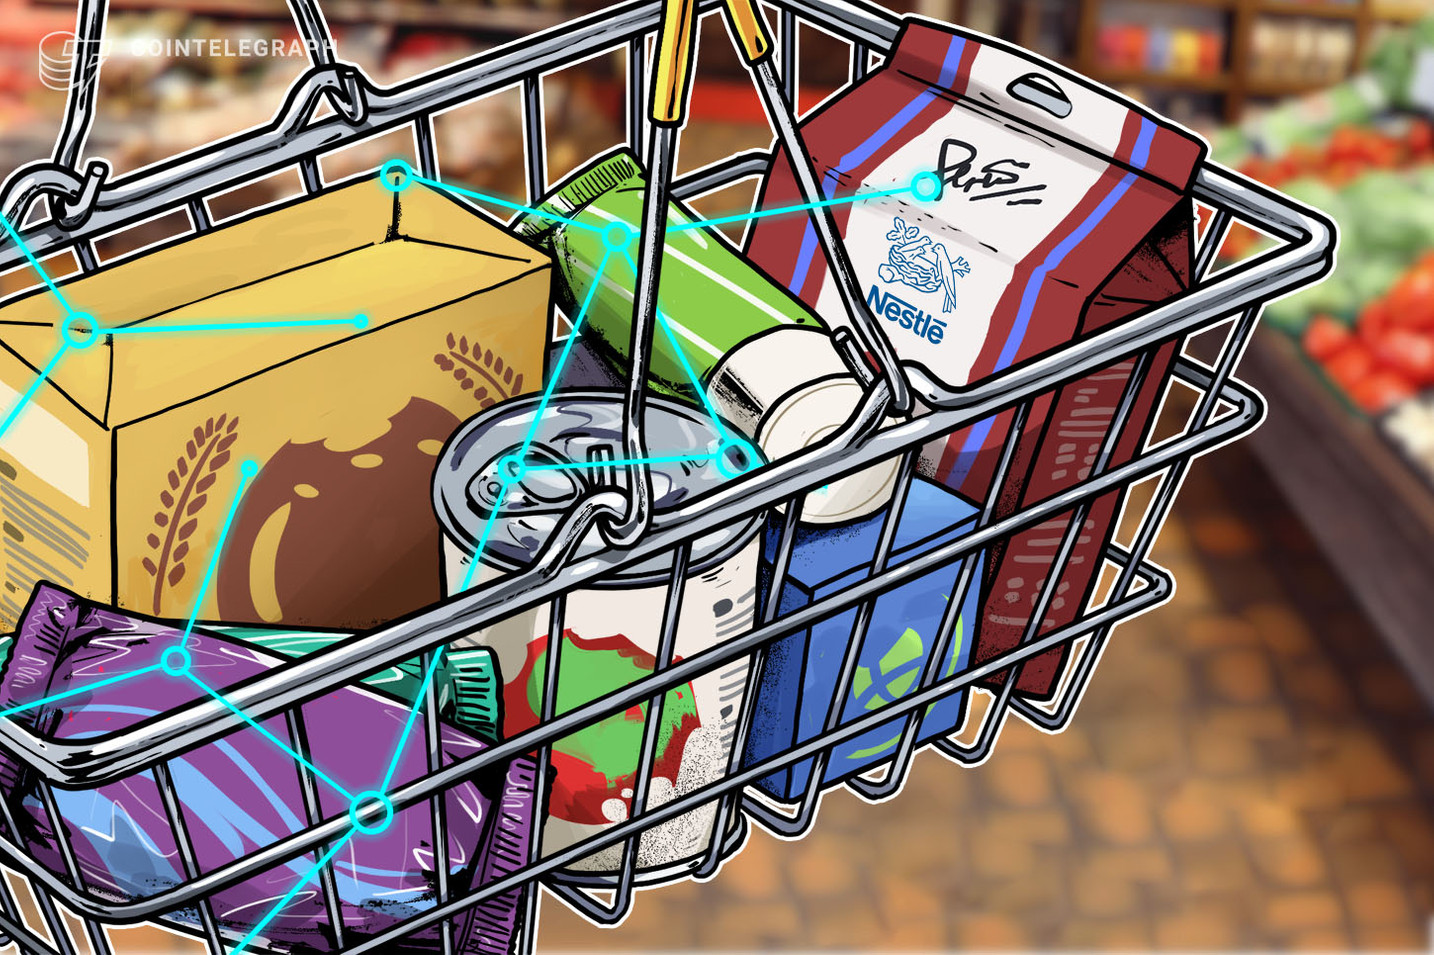 Nestlé Reveals Blockchain Supply Chain Tracking Pilot Program